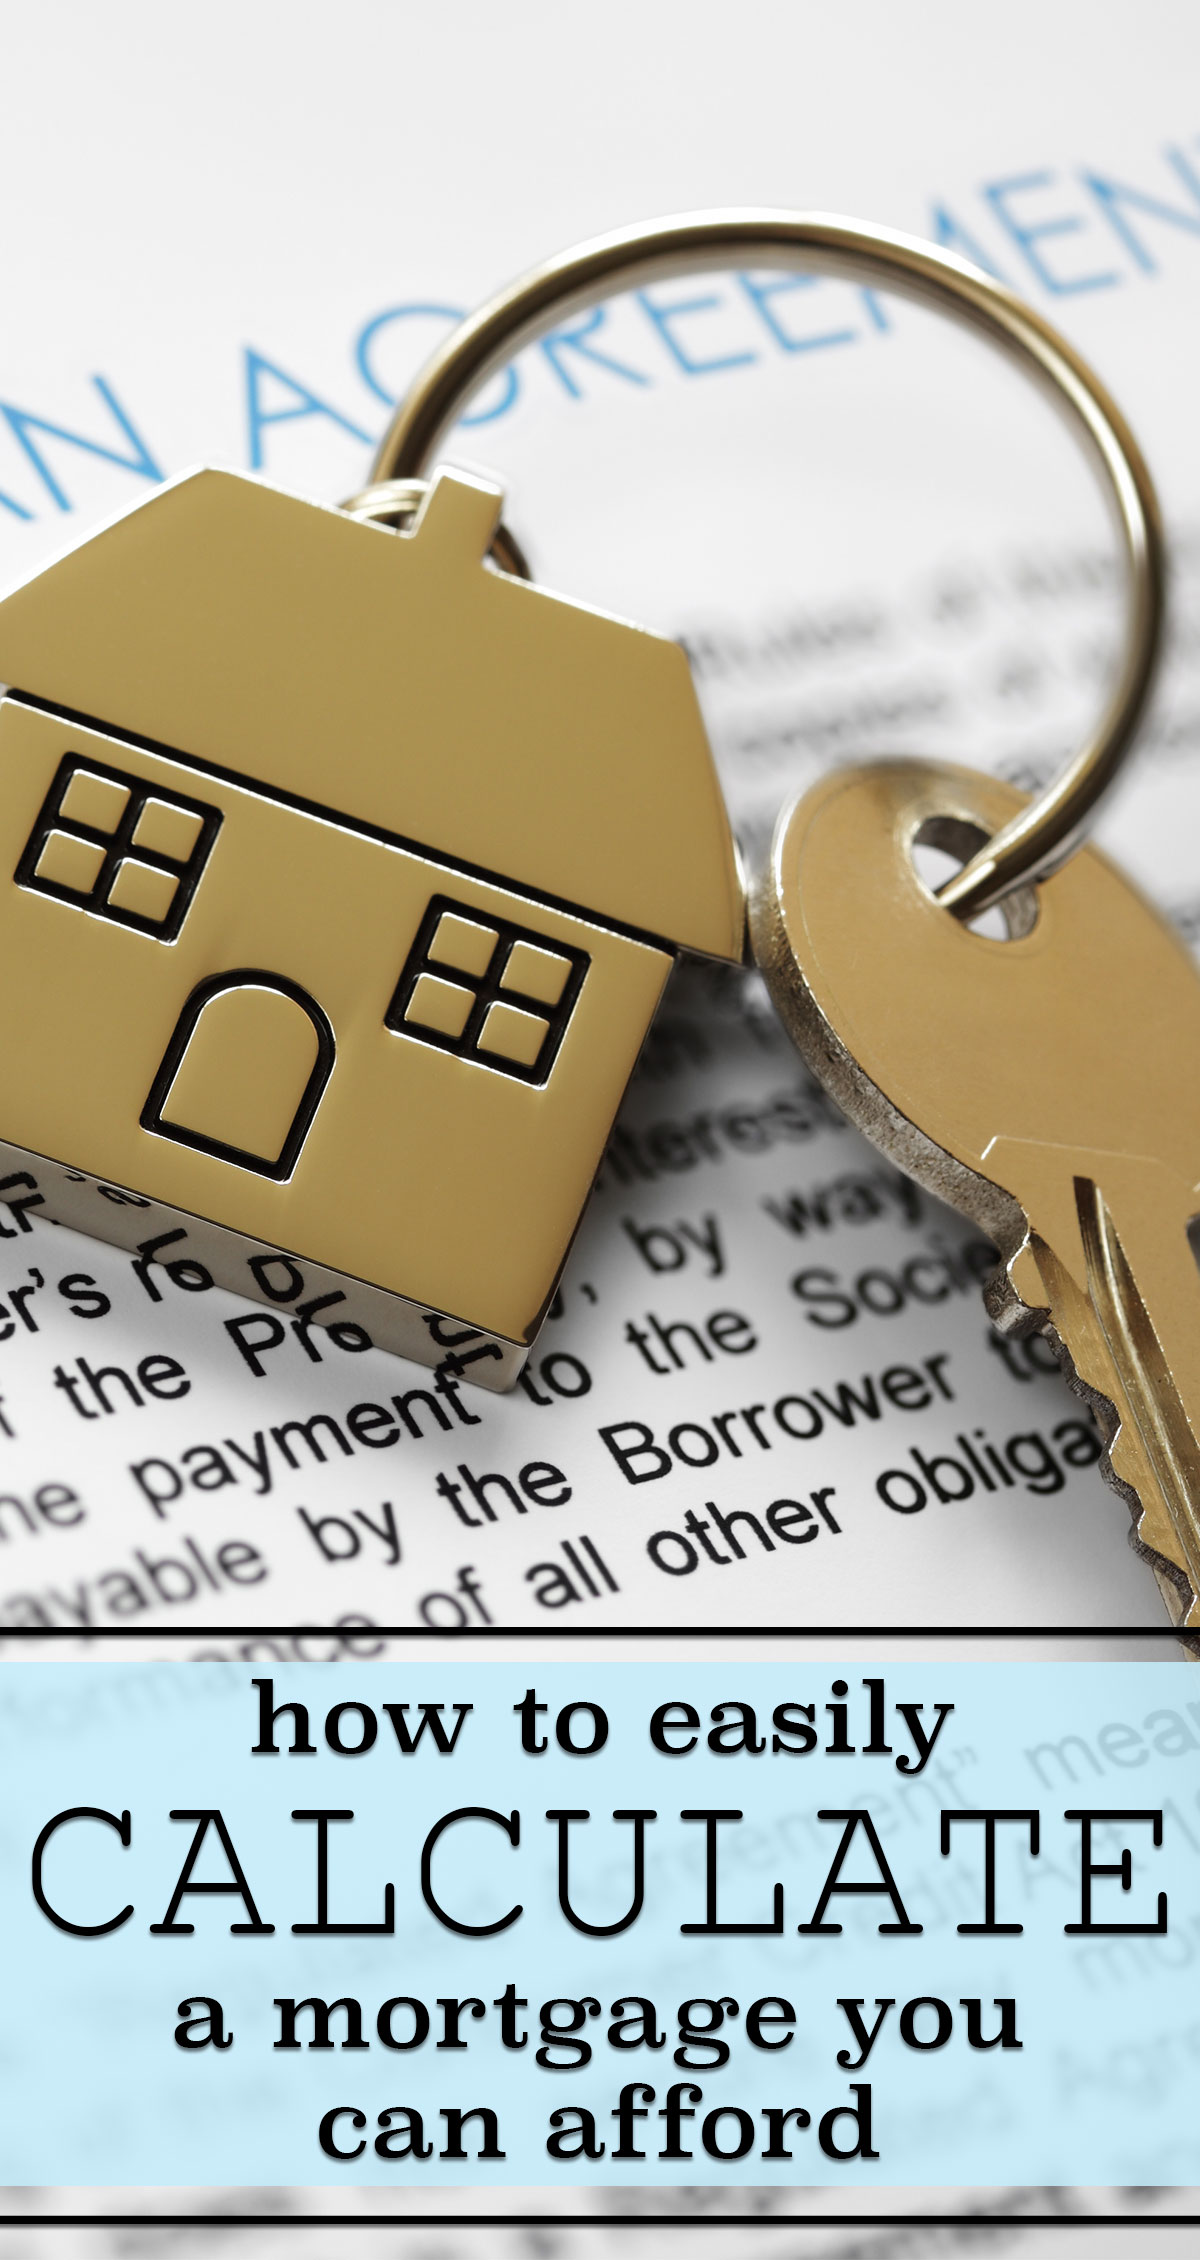 How To Easily Calculate a Mortgage You Can Afford Pin